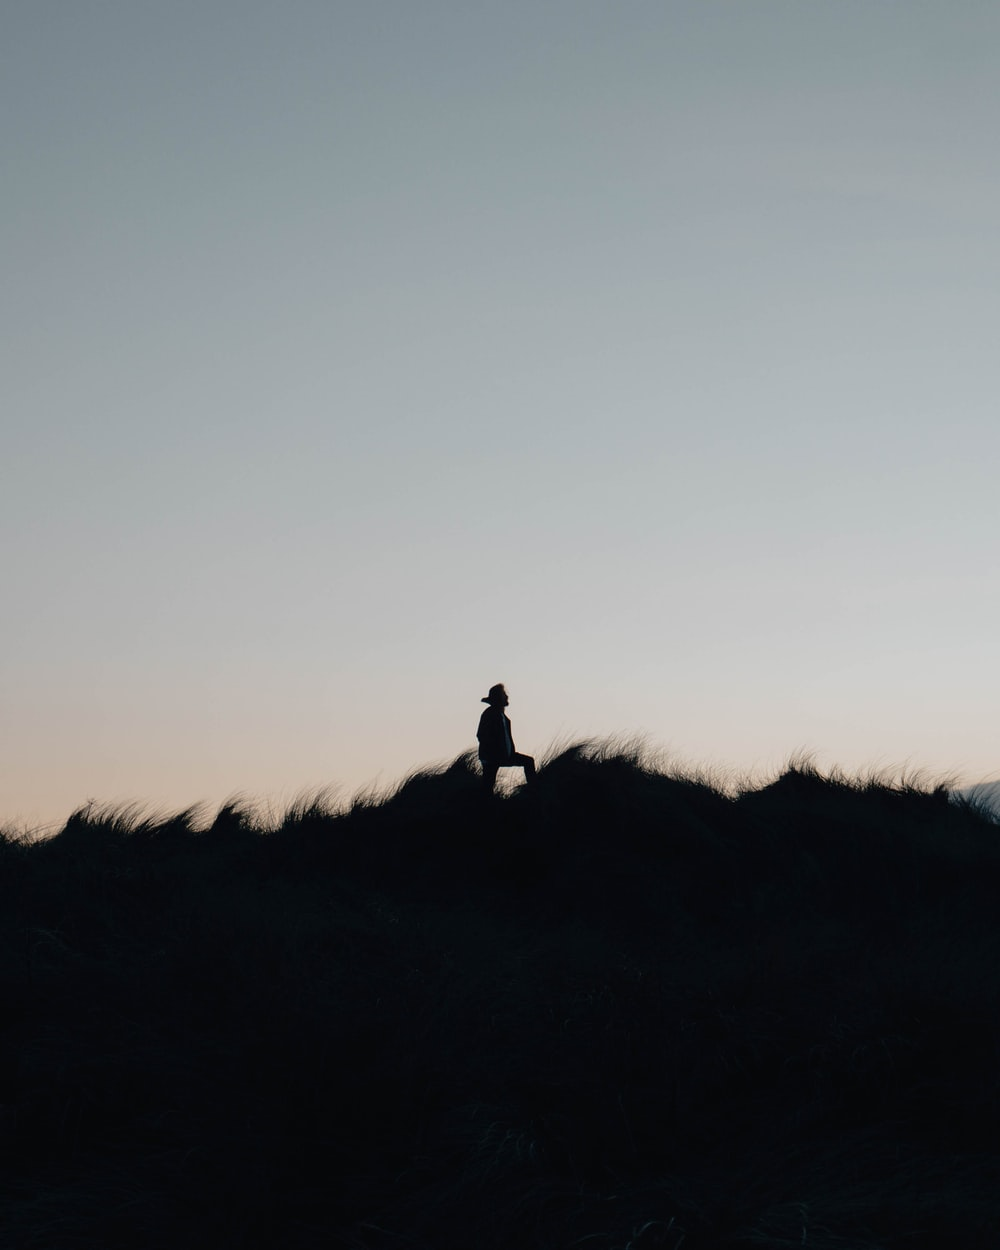 silhouette of person standing on hill at daytime